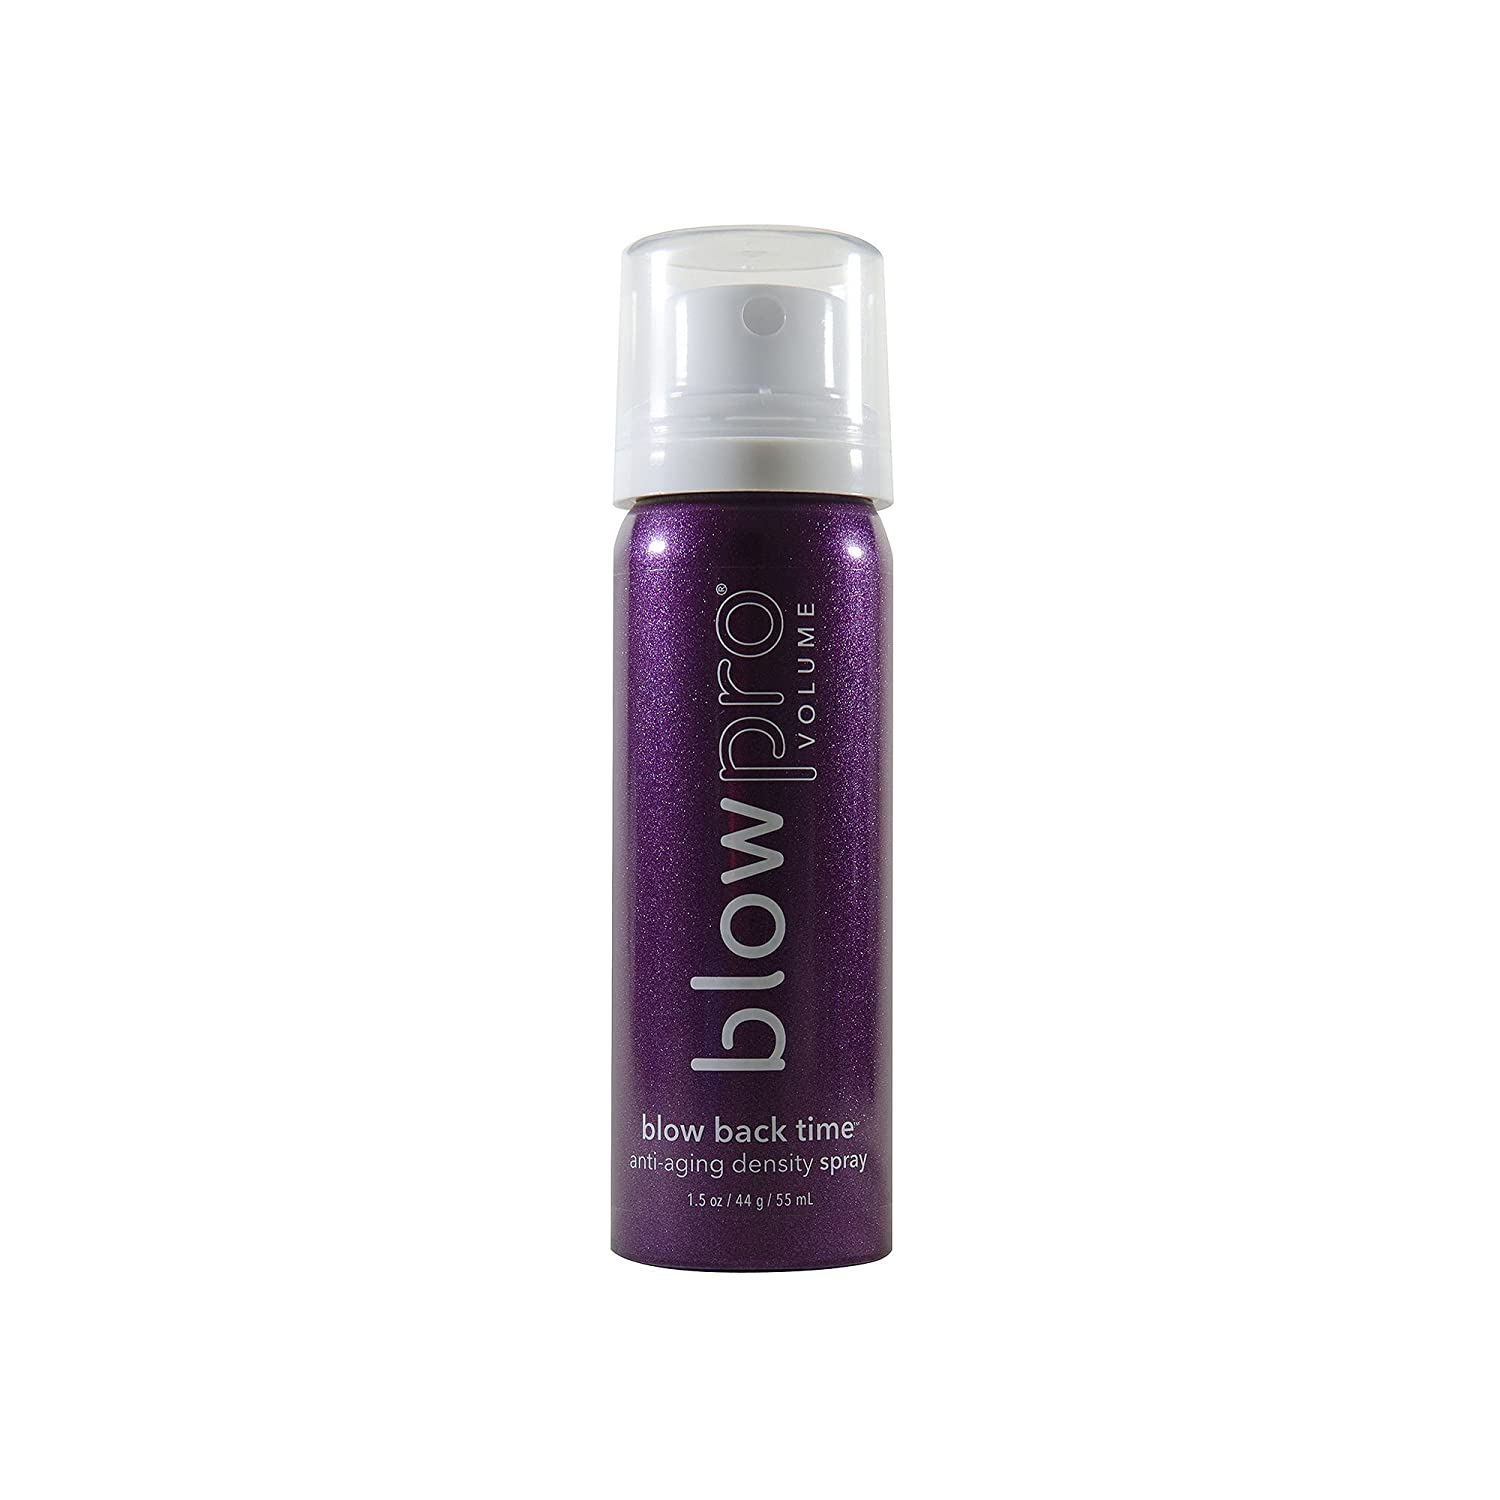 Blowpro Blow Back Time Density Spray 2.4 Ounce